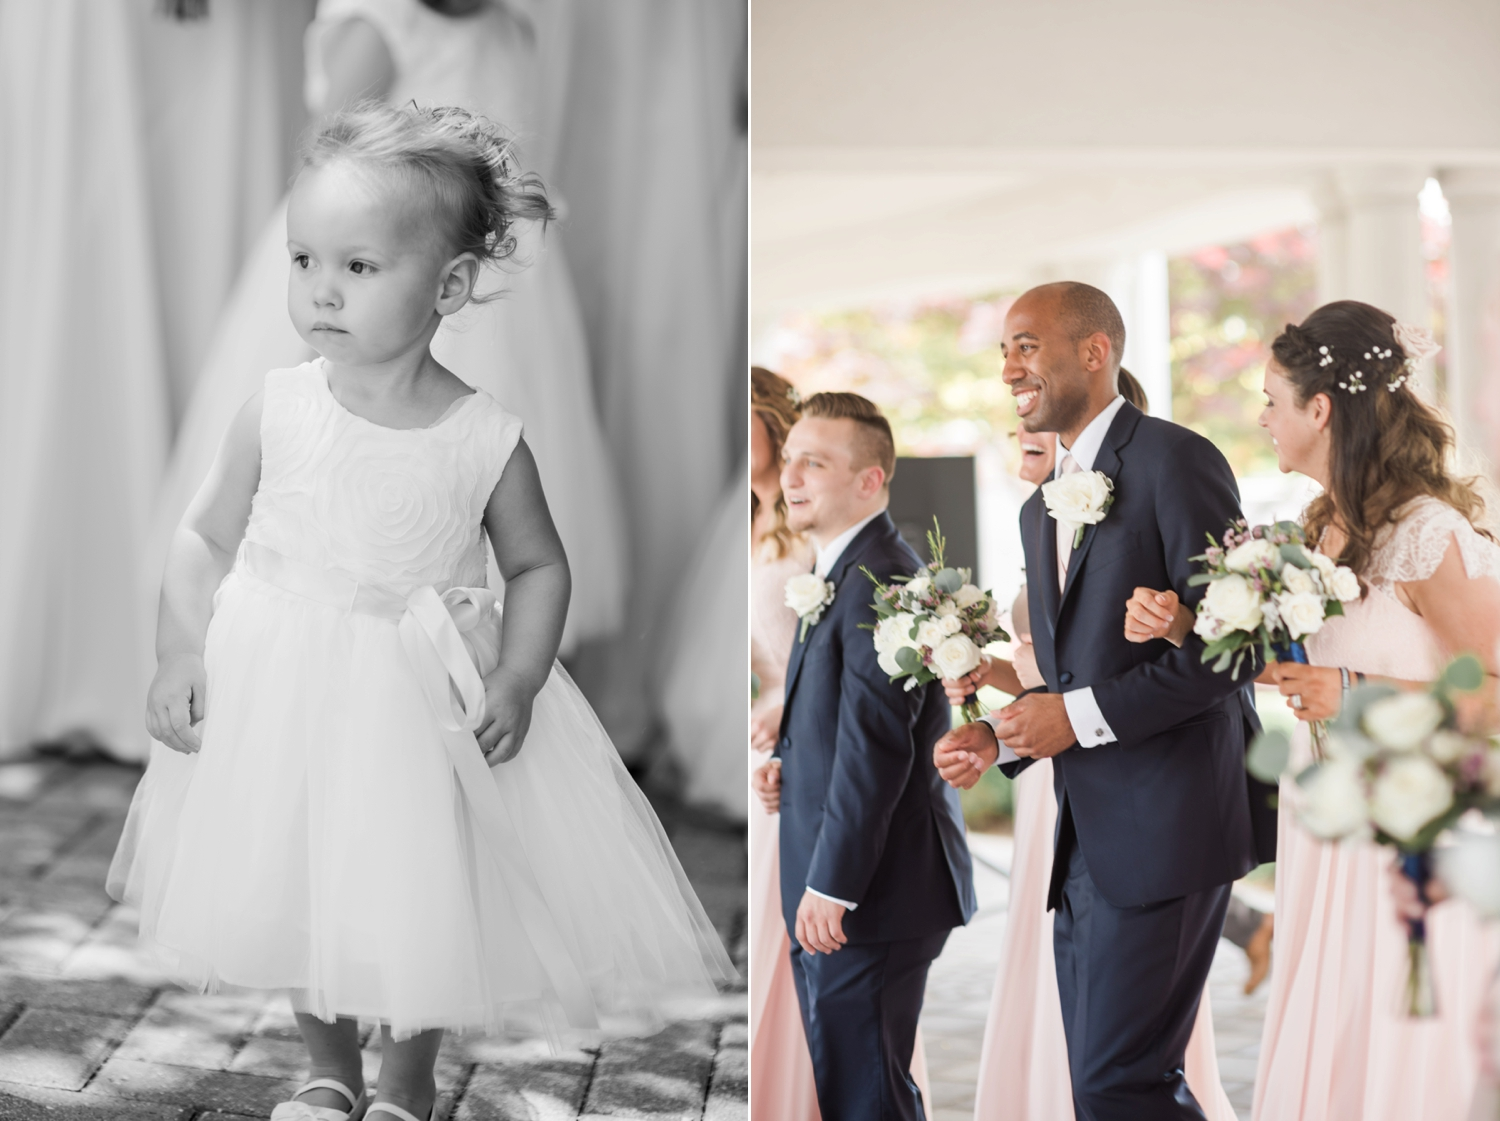 Community_Life_Center_Indianapolis_Indiana_Wedding_Photographer_Chloe_Luka_Photography_6915.jpg